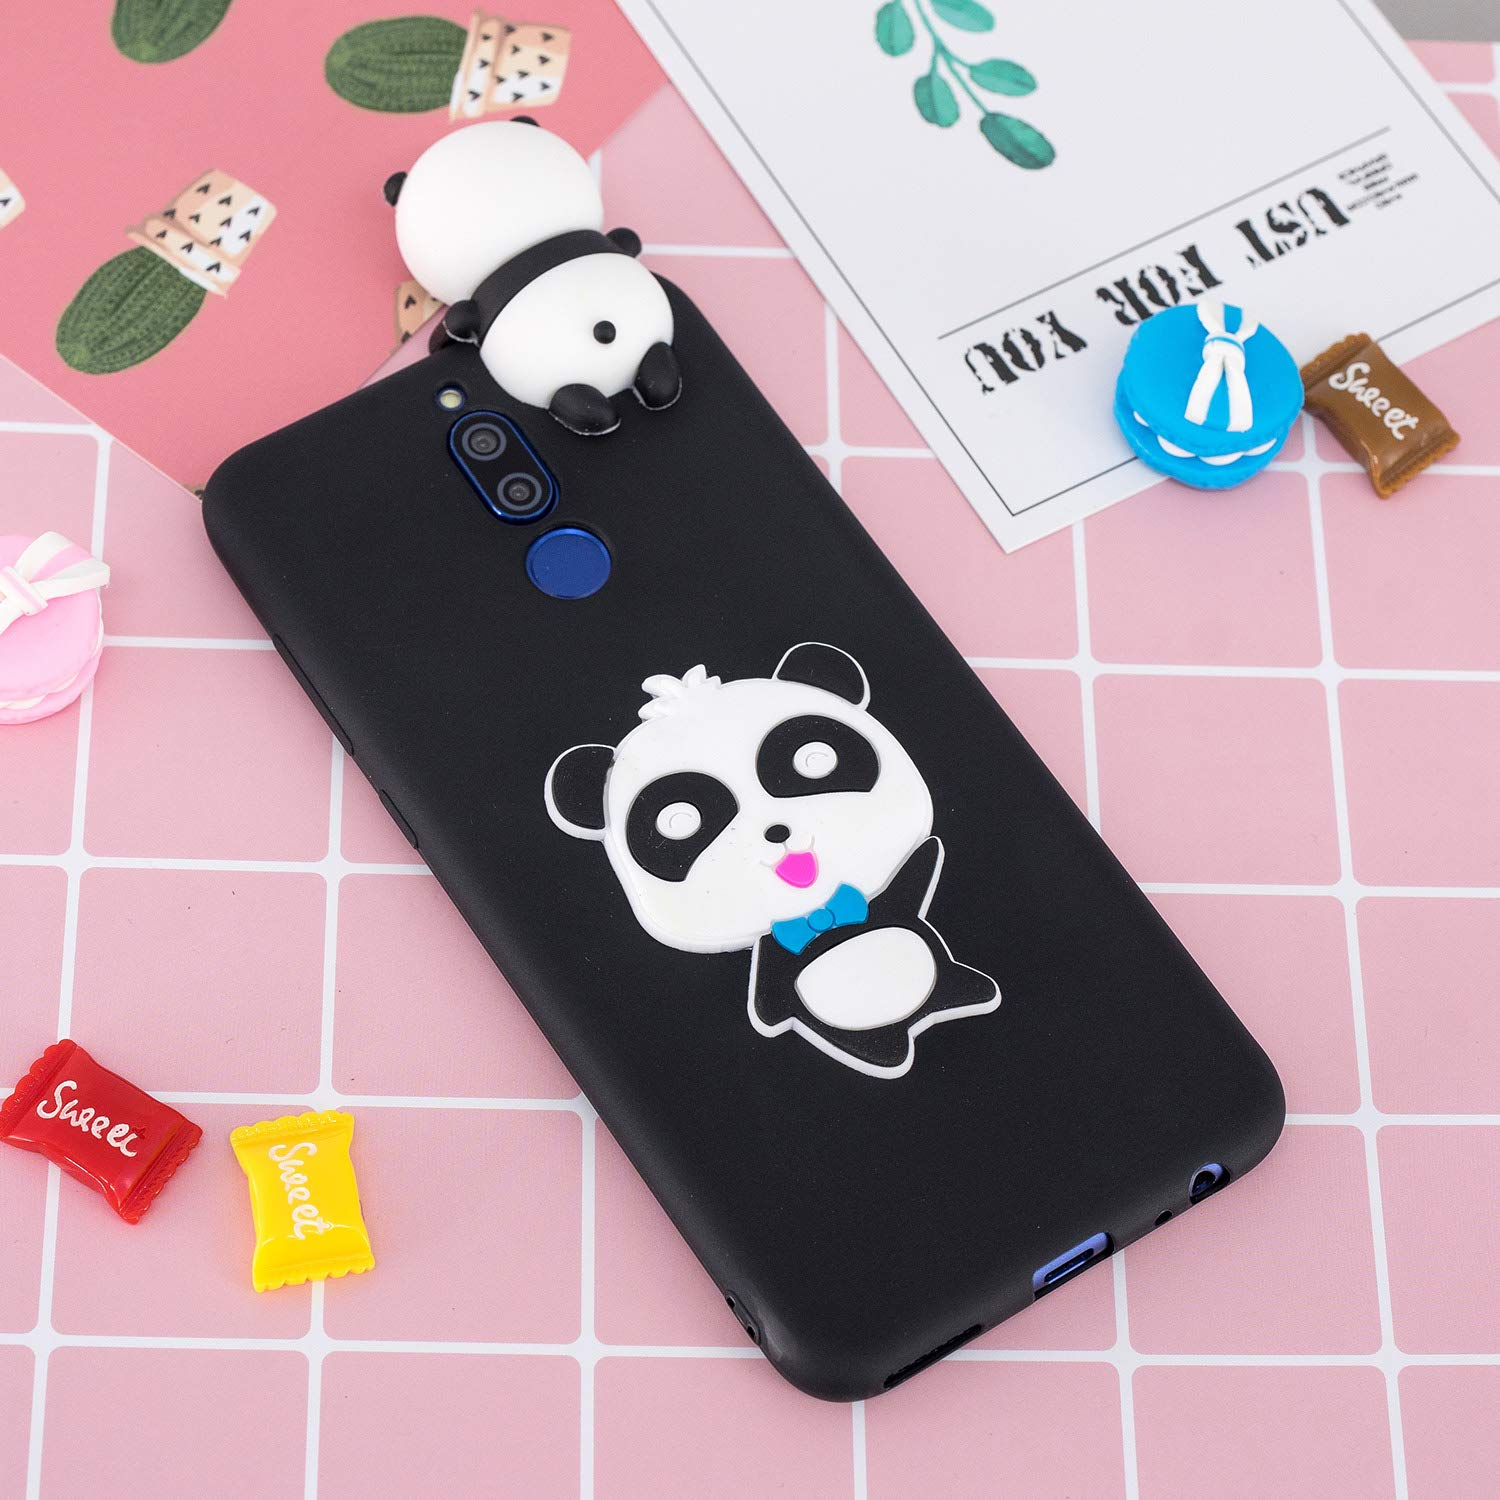 for Huawei Mate 10 Lite Silicone Case with Screen Protector,QFFUN 3D Cartoon [Panda] Pattern Design Soft Flexible Slim Fit Gel Rubber Cover,Shockproof Anti-Scratch Protective Case Bumper by QFFUN (Image #6)